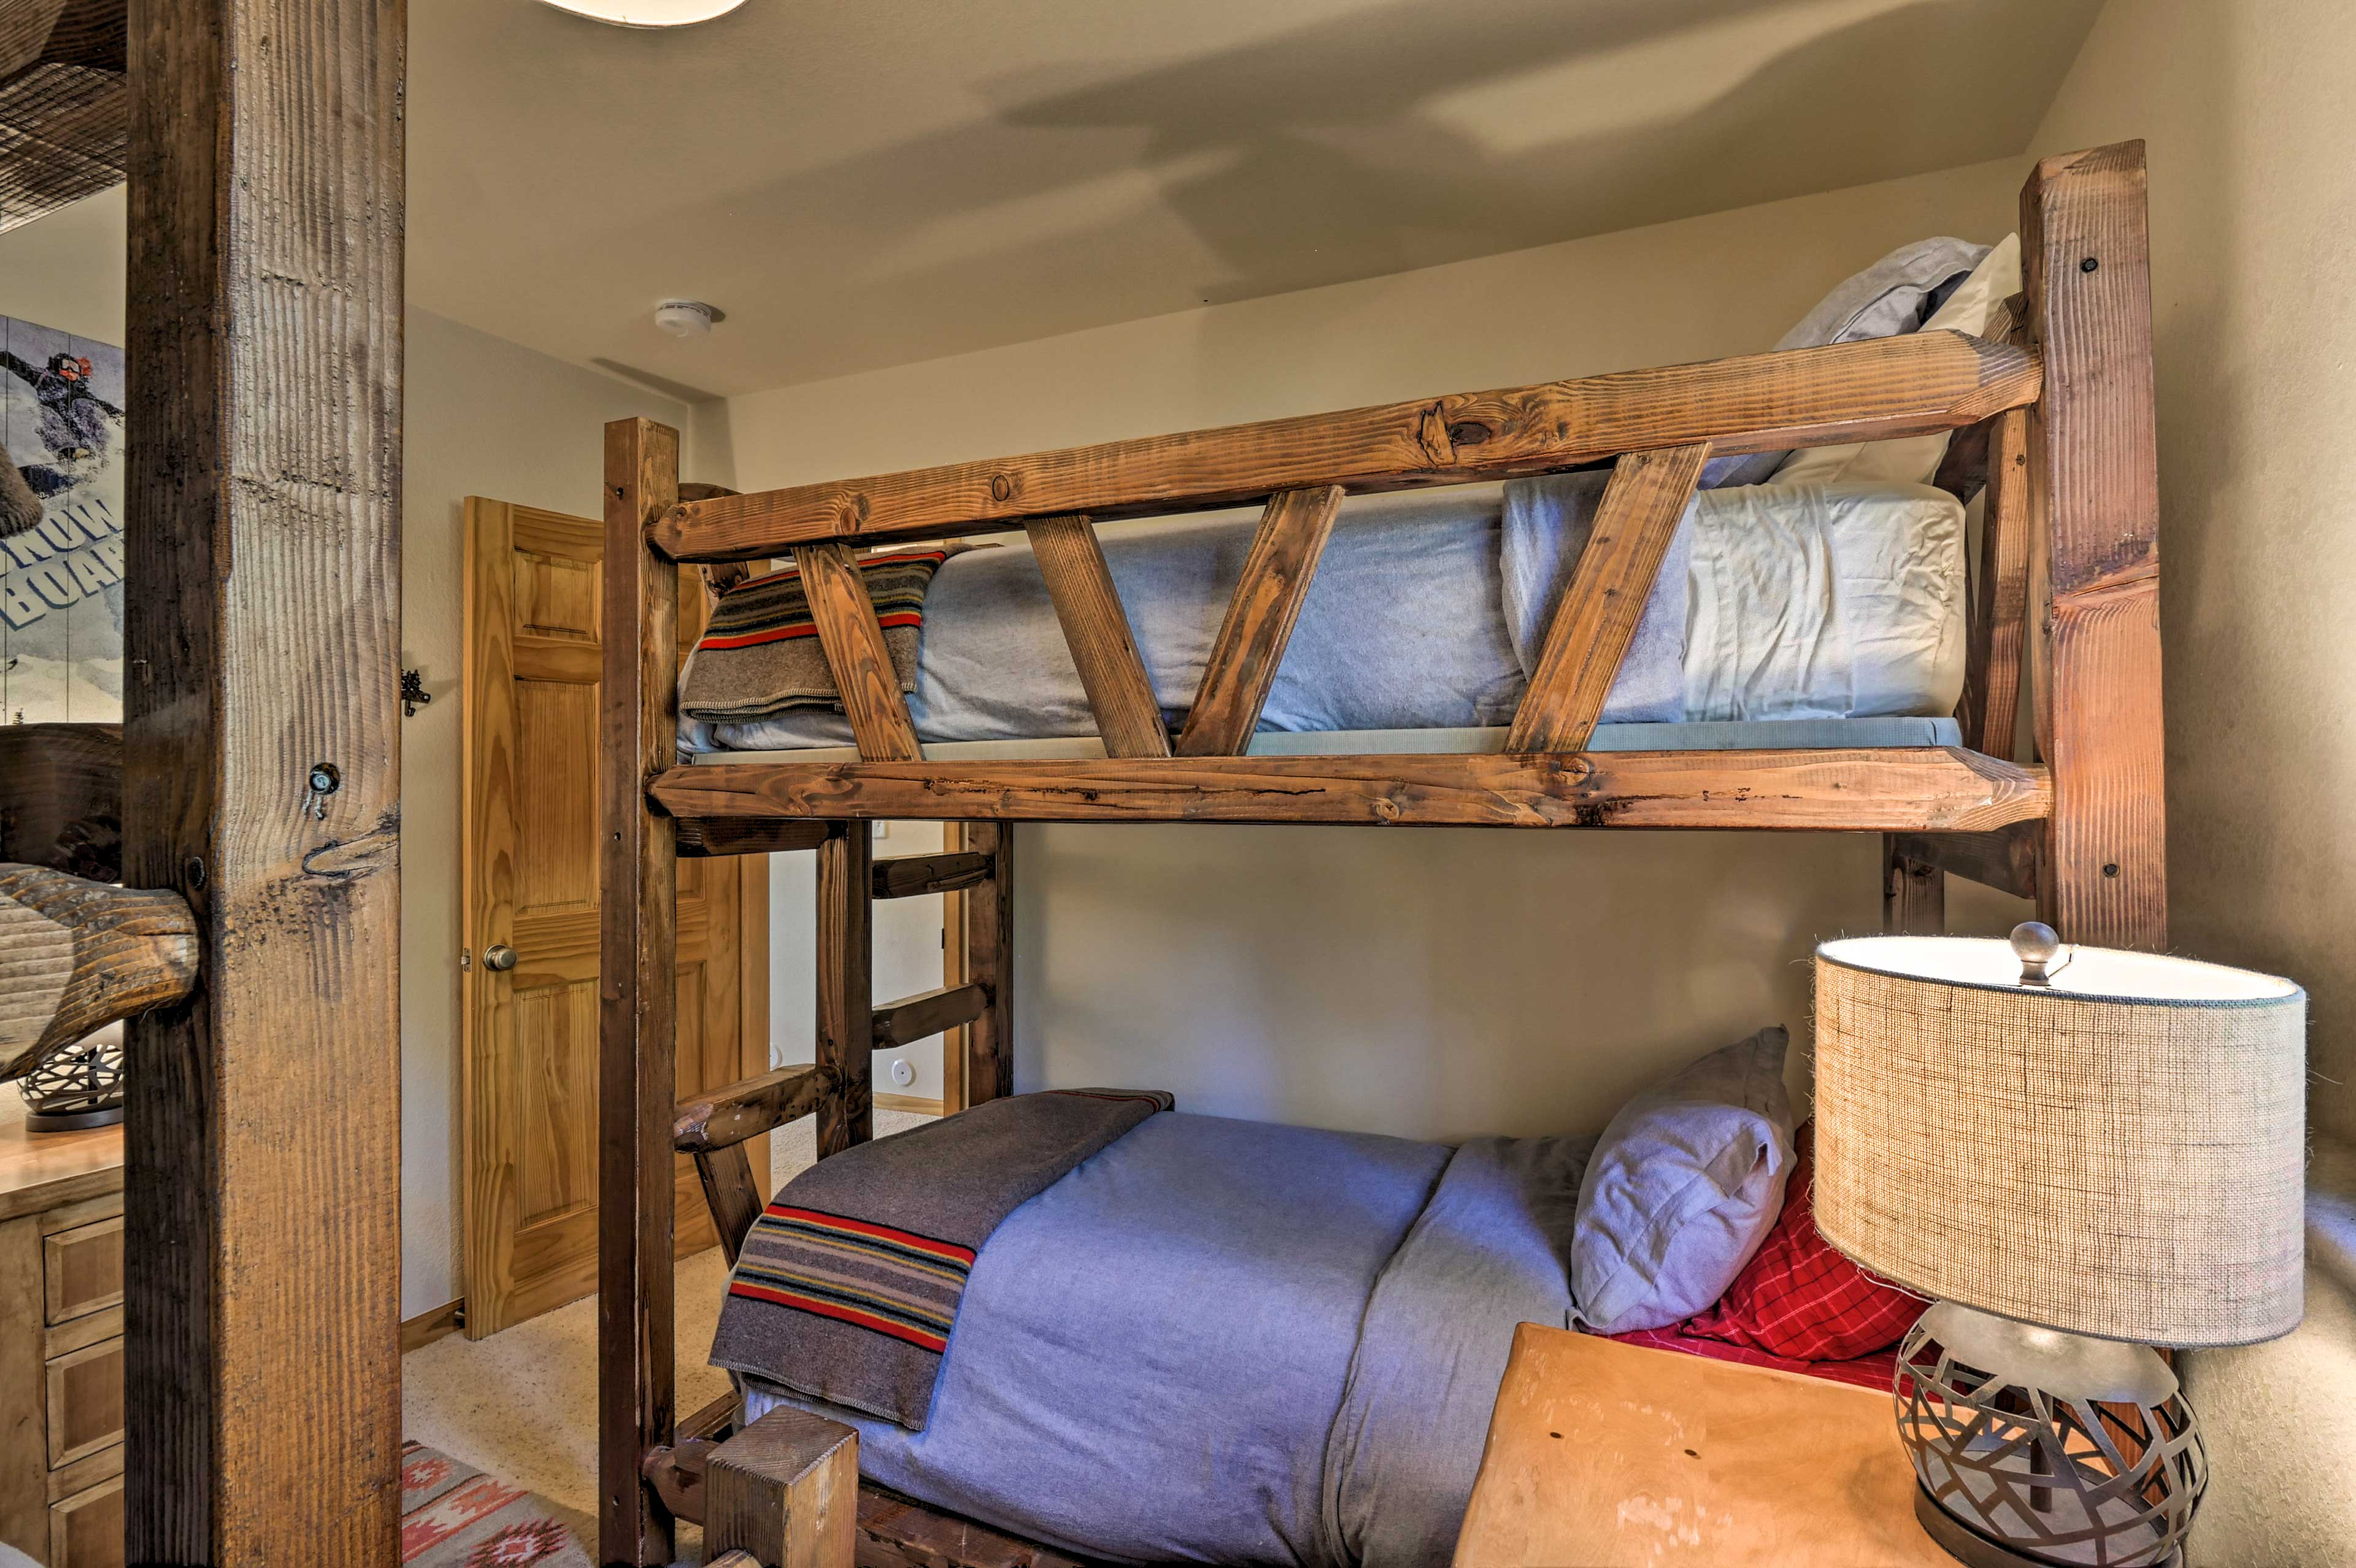 The final bedroom features twin-over-full and twin-over-twin bunk beds.